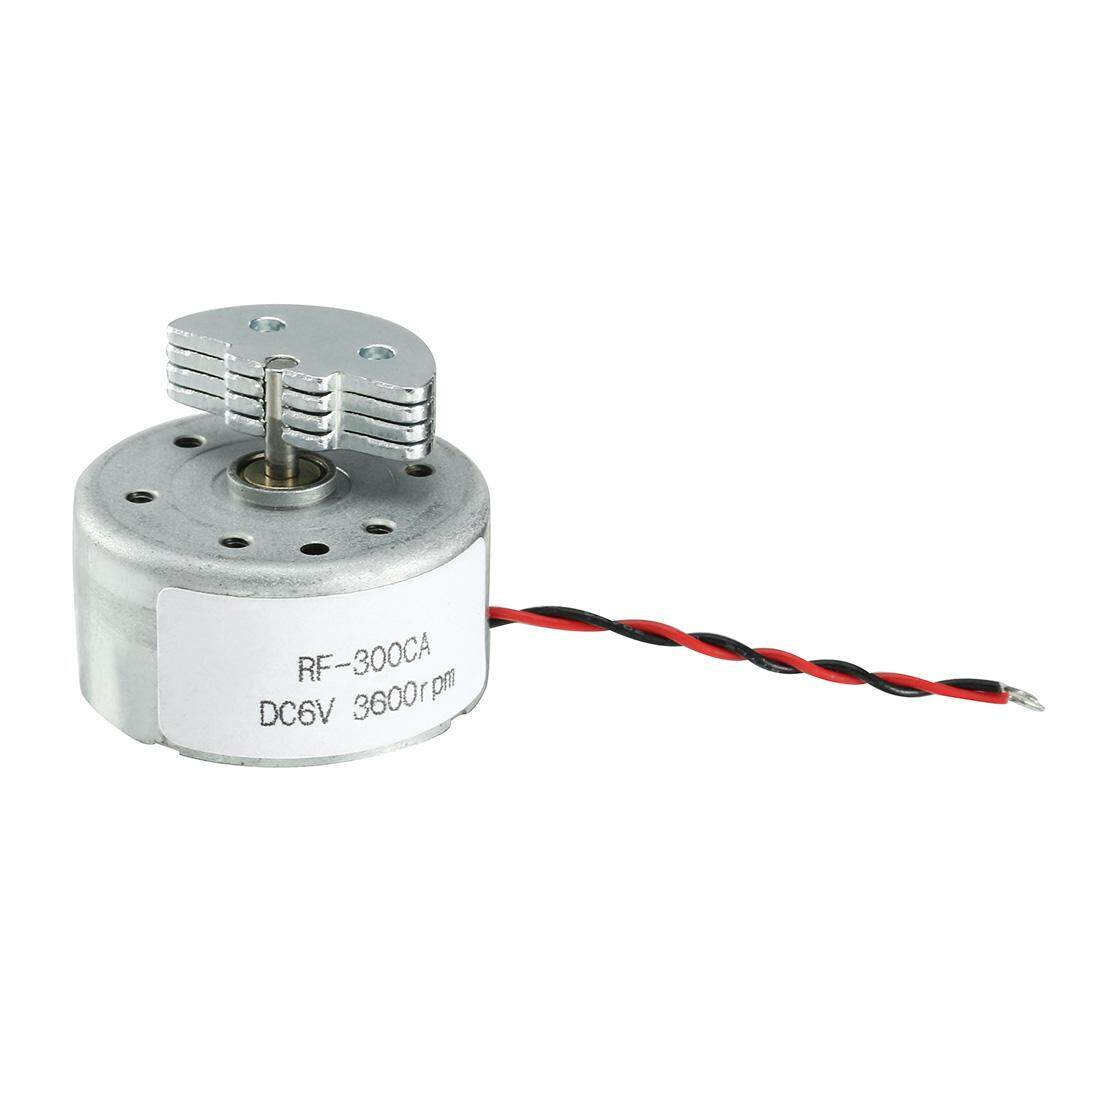 Buy Sell Cheapest Axa 300 V Best Quality Product Deals Rf 300ca Dc Motors Low Current Micro 3v 3600rpm 2 Cables High Torque Cylinder Vibration Motor